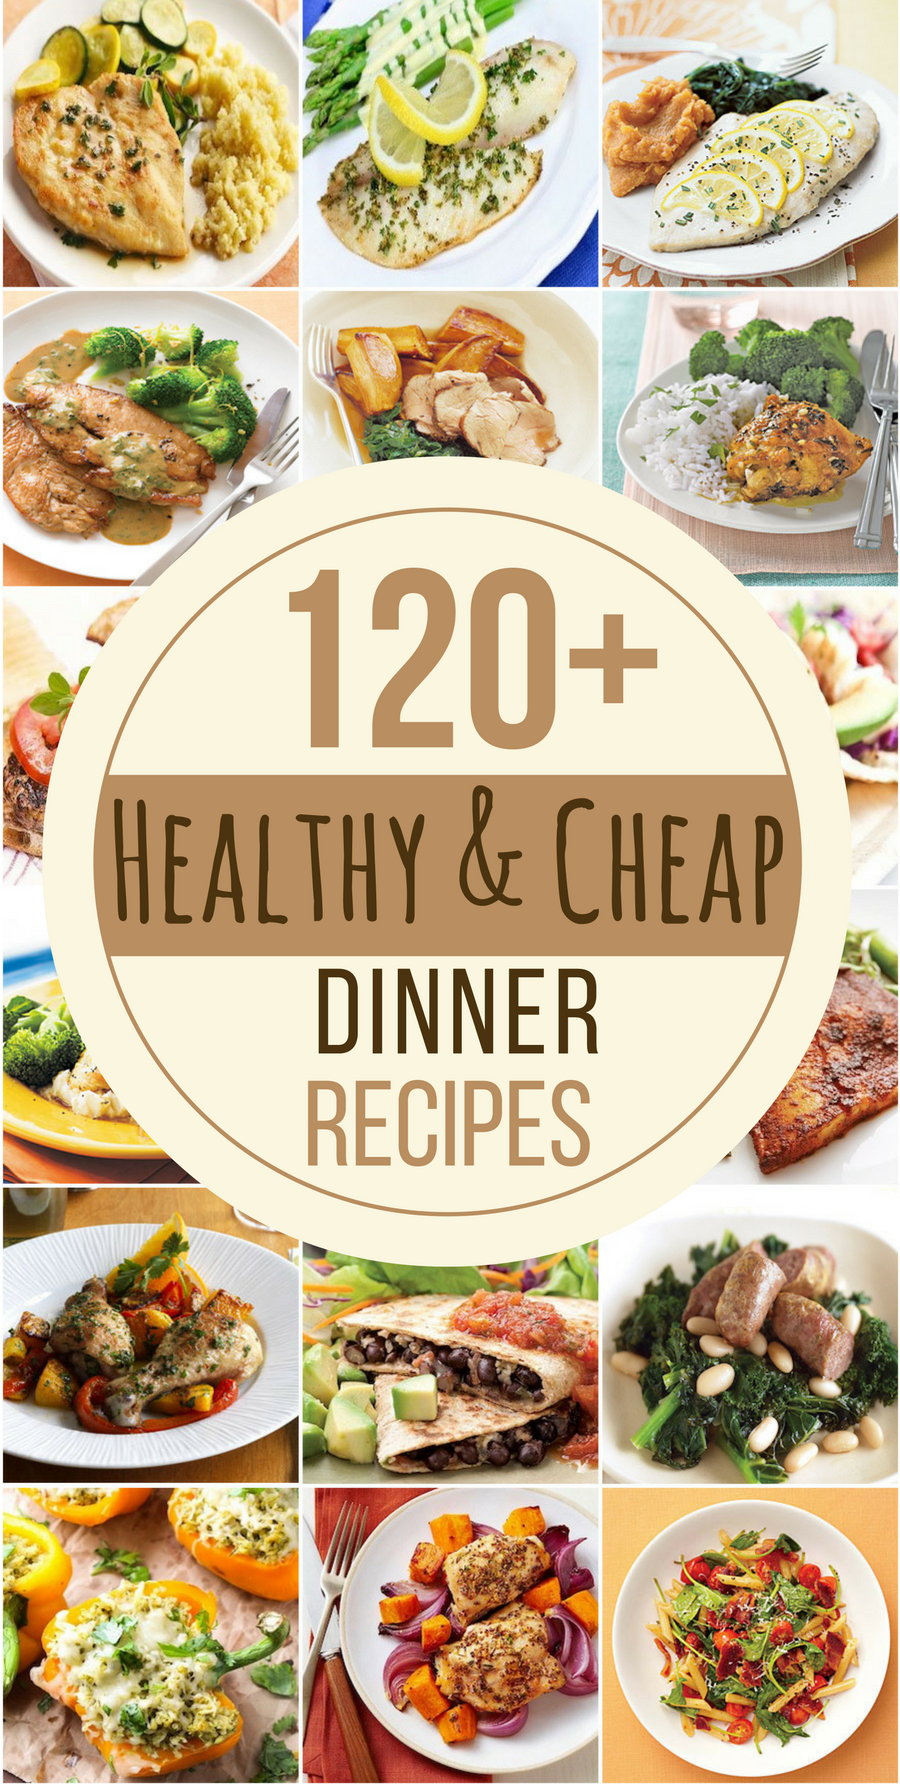 120 healthy and cheap dinner recipes prudent penny pincher healthy recipes forumfinder Gallery